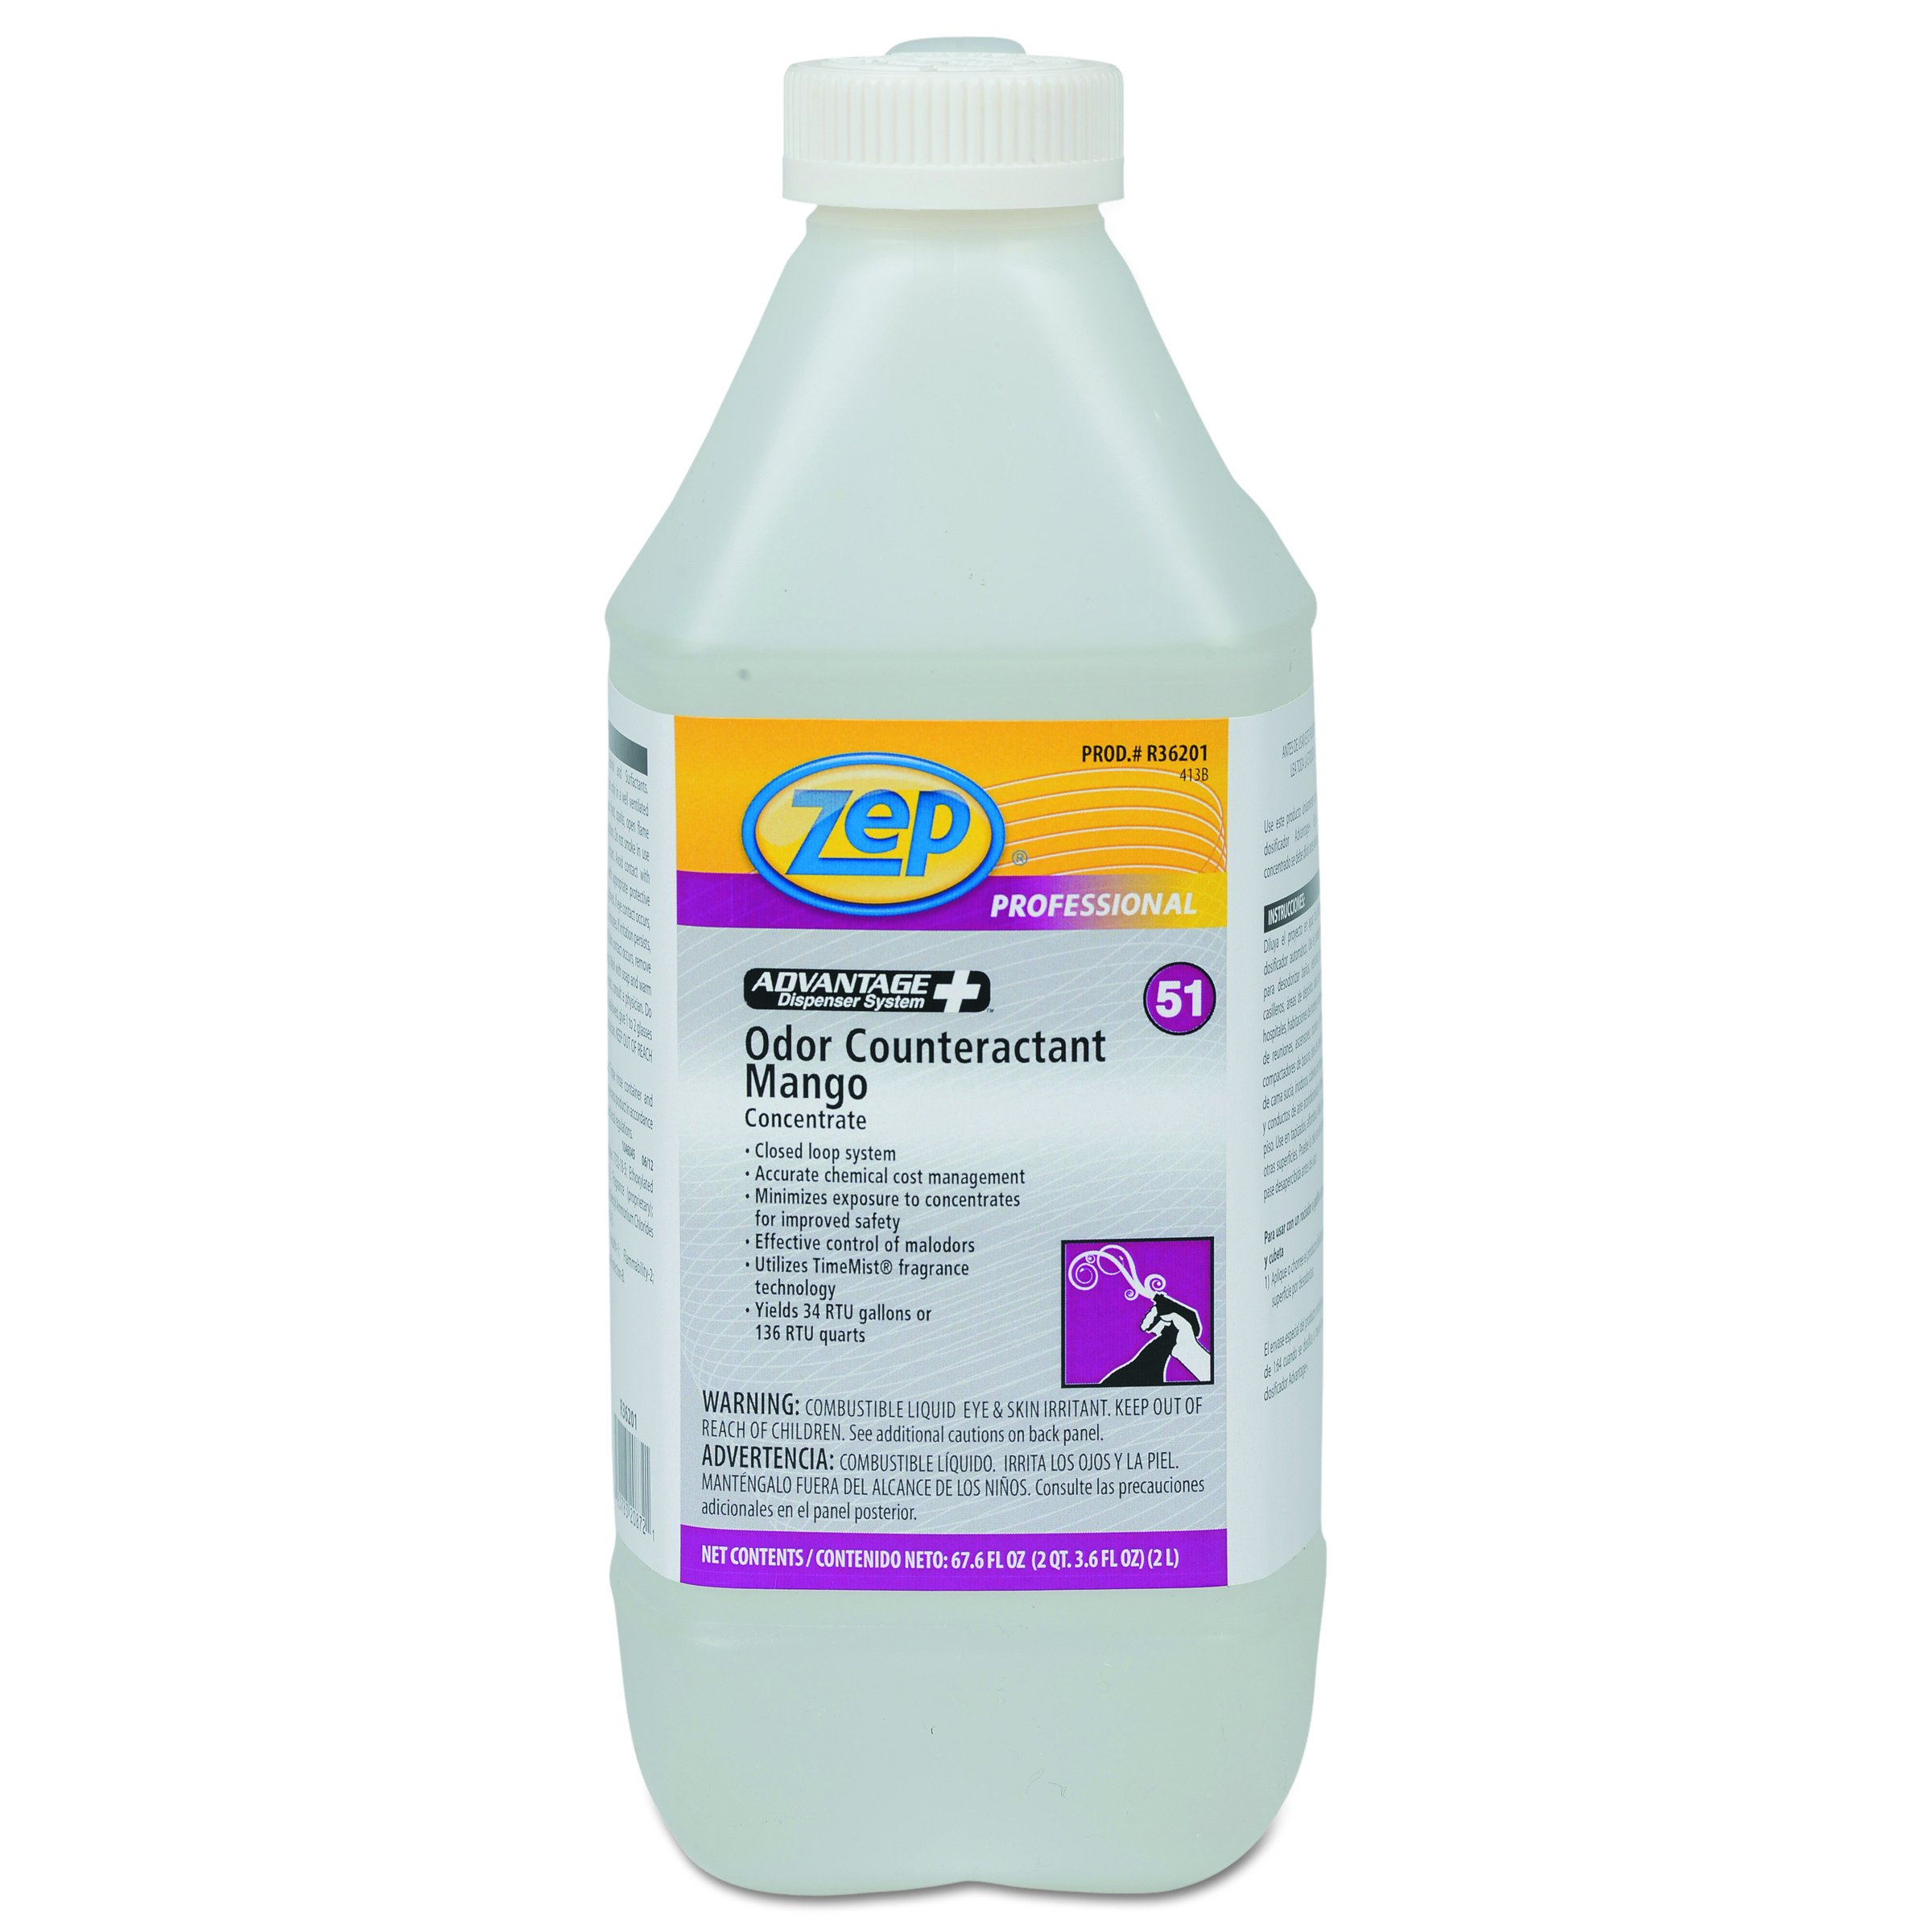 Concentrated Odor Counteractant, Mango, 2L Bottle